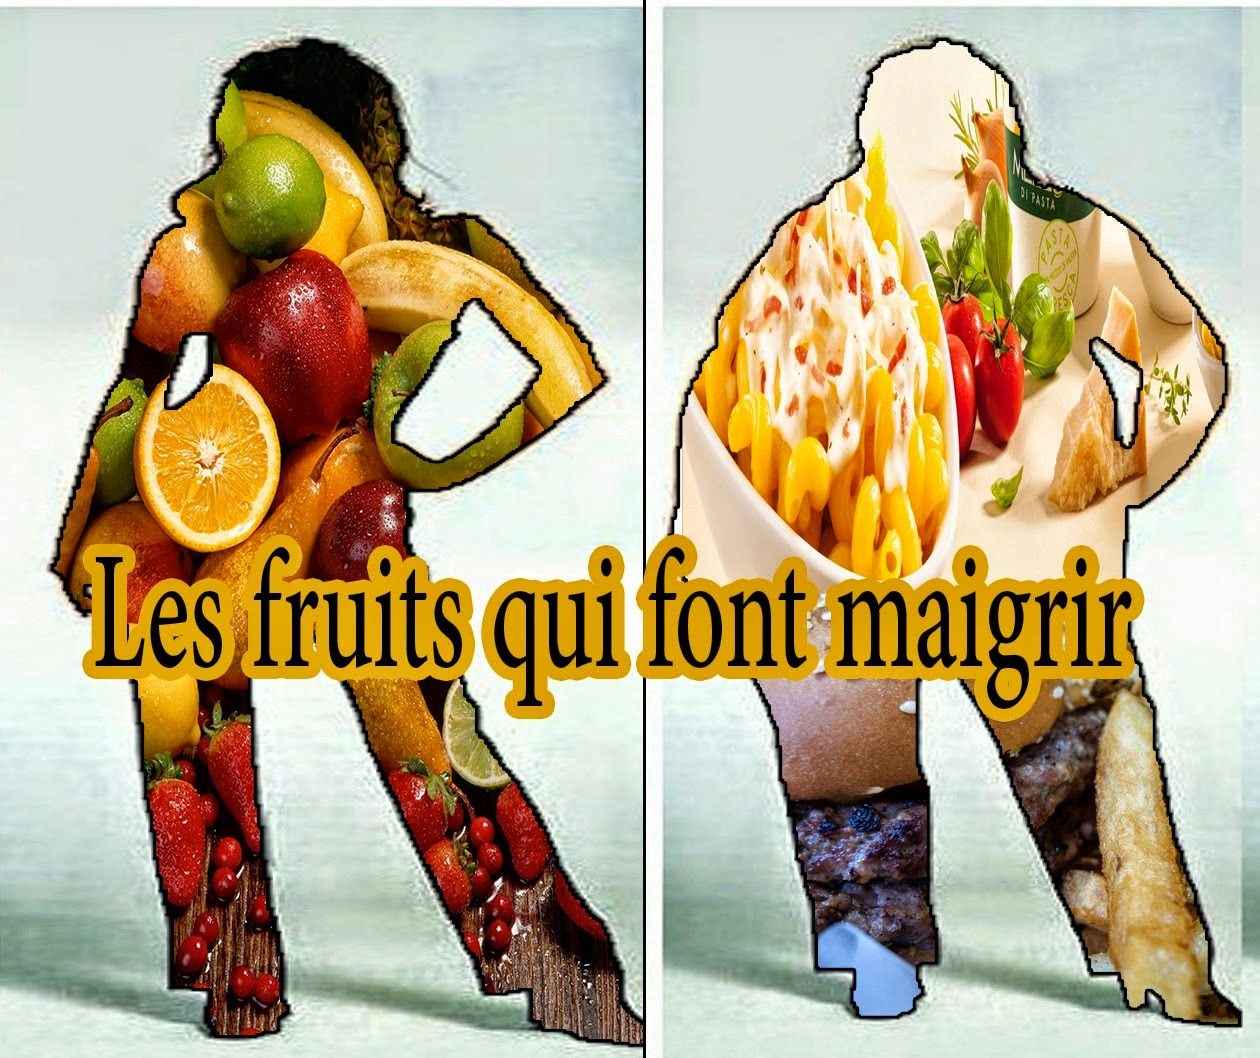 les fruits qui font maigrir sports et sant. Black Bedroom Furniture Sets. Home Design Ideas